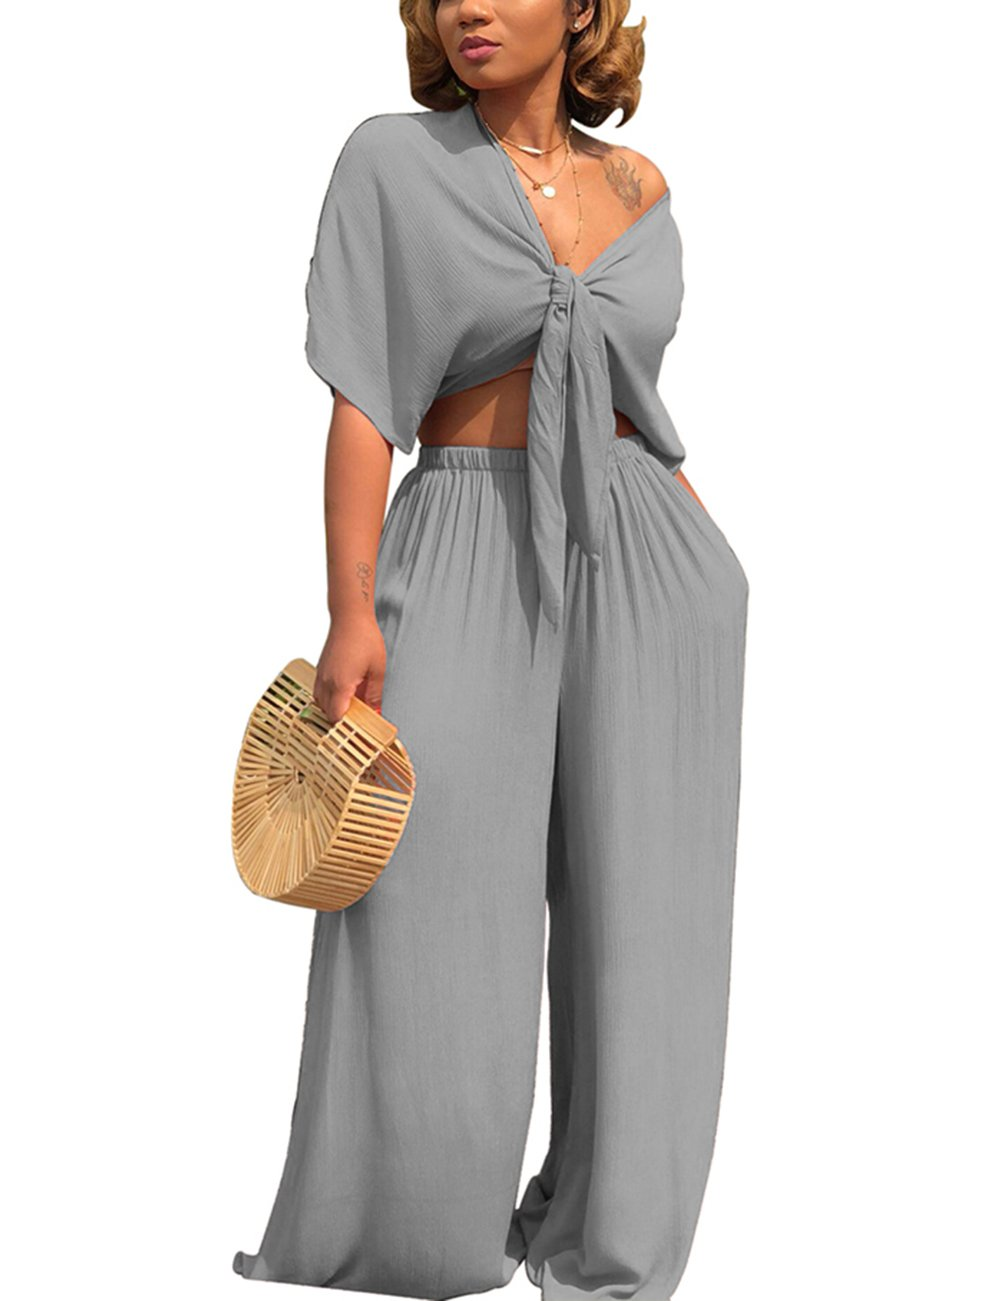 Women's 2 Pieces Outfits Crop Top and Long Pants Tracksuits Set(Grey 1#, S)